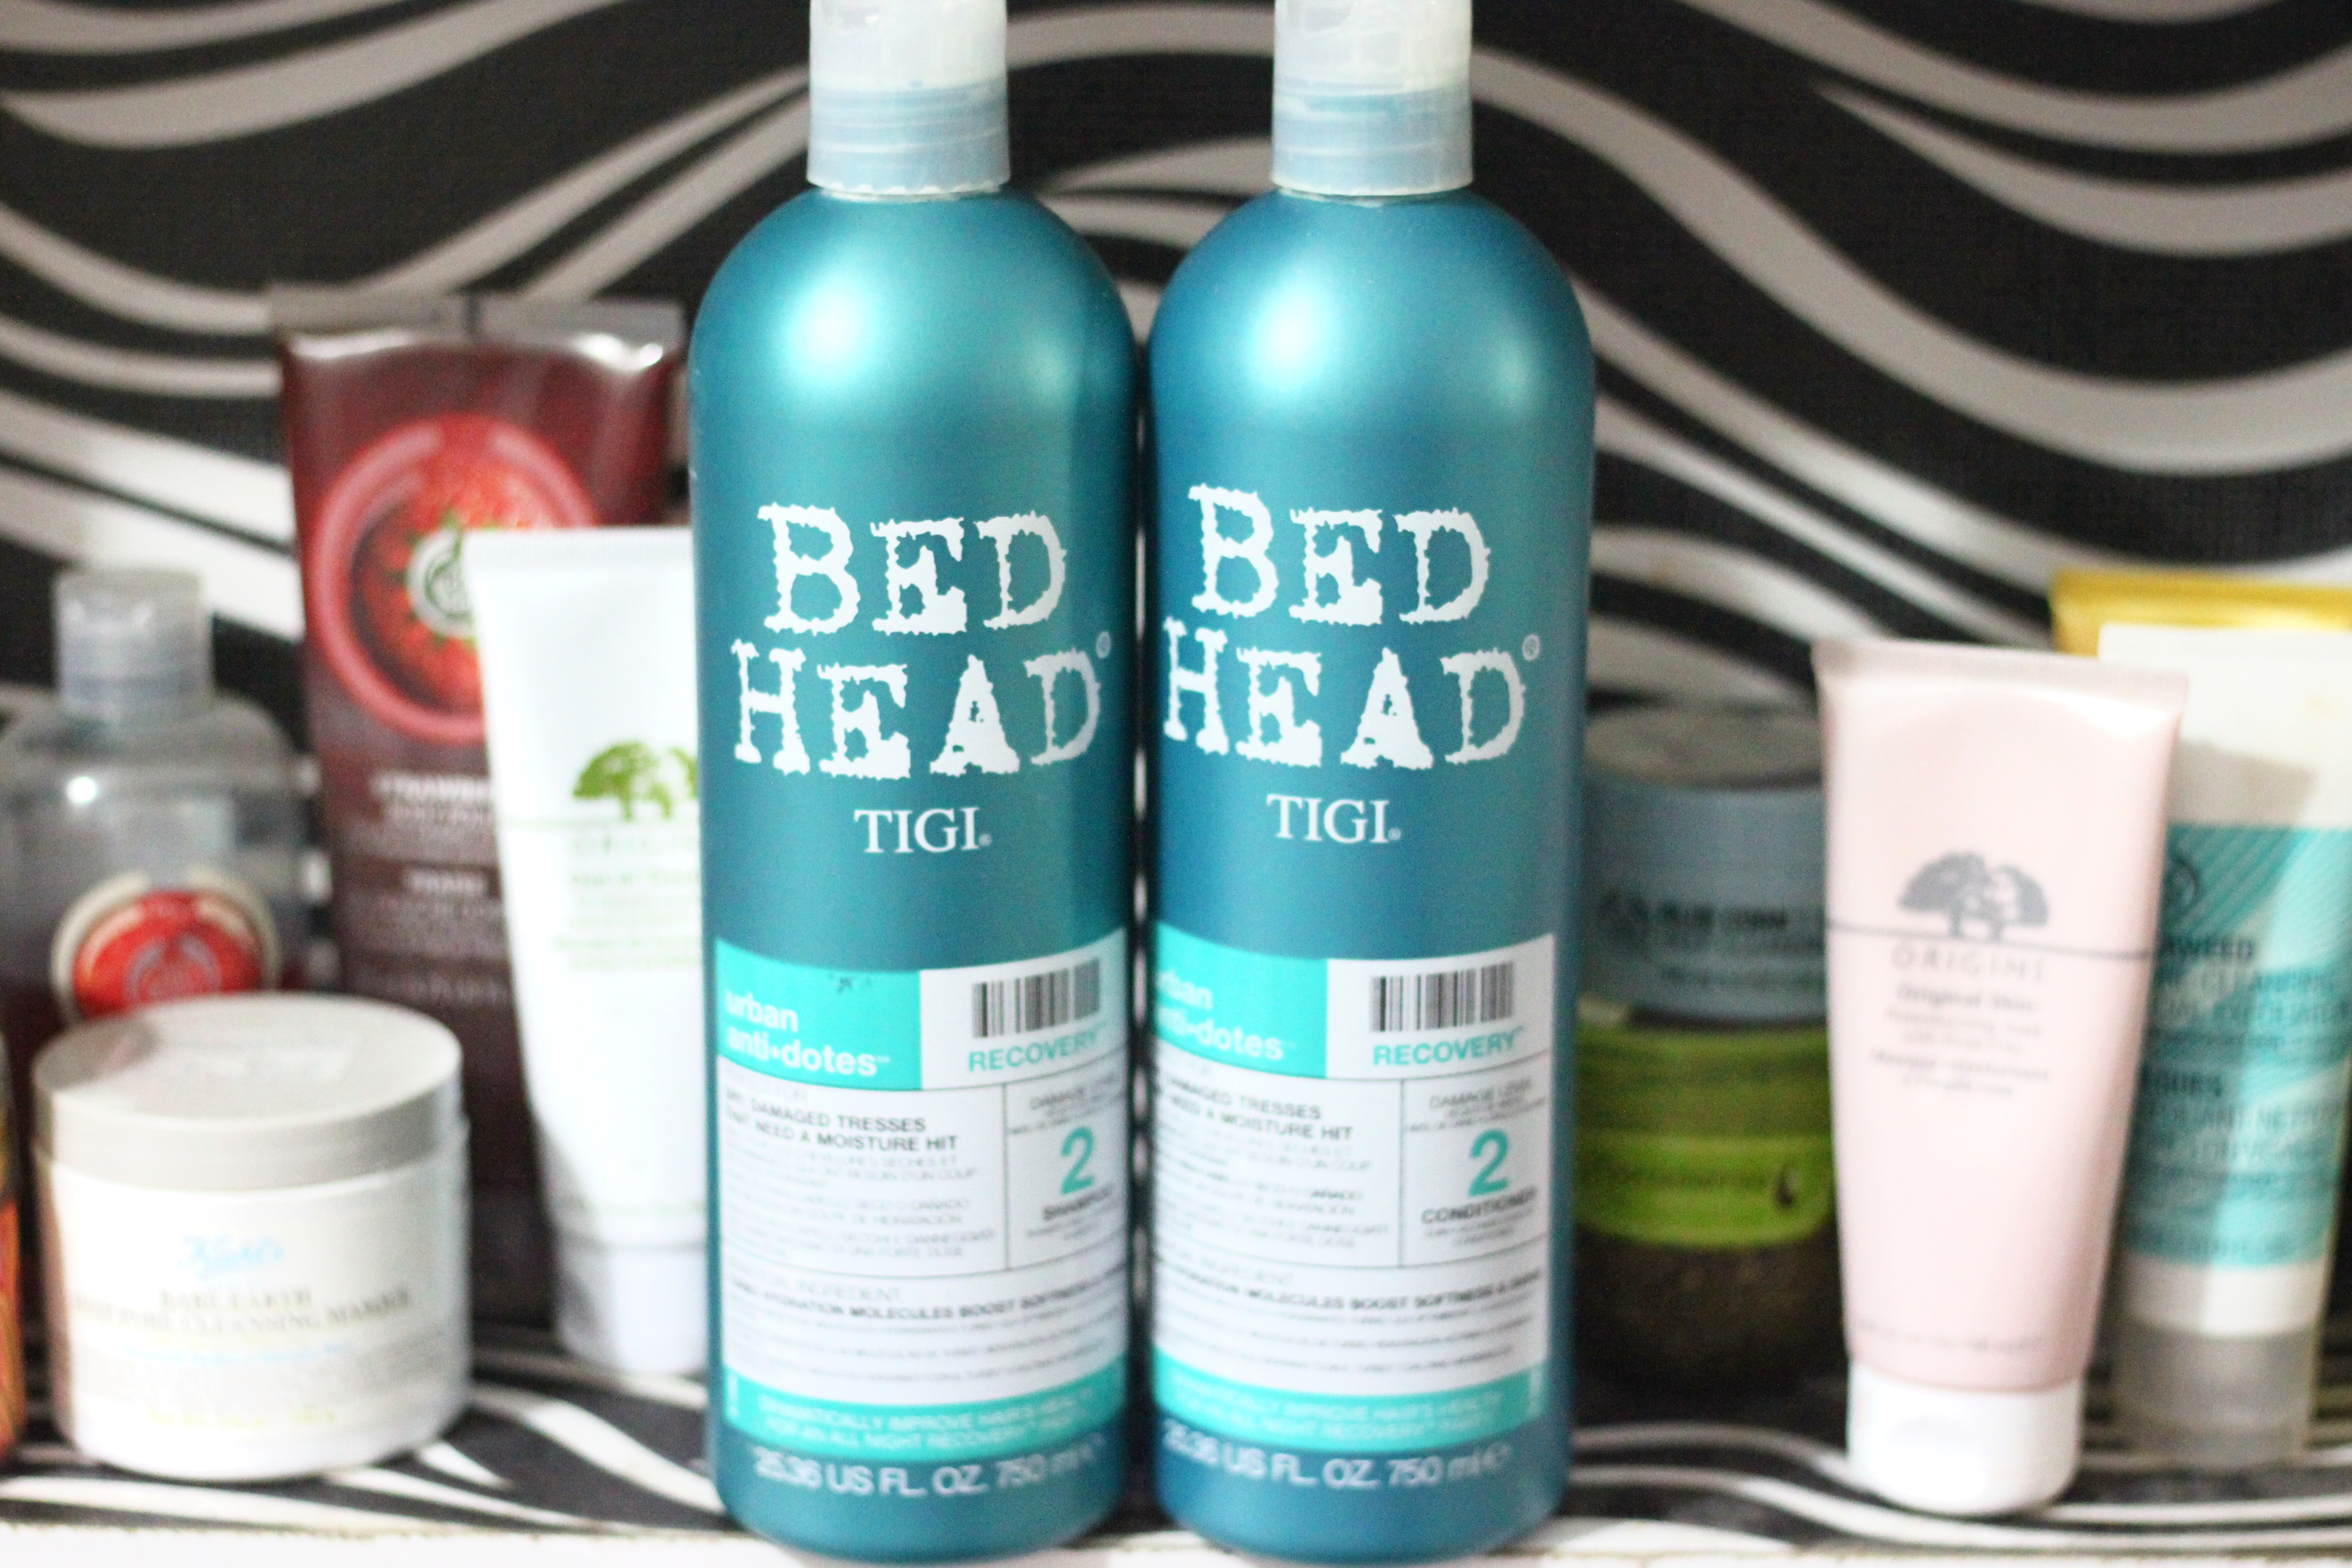 Tigi urban antidotes shampoo, bed head tigi shampoo and conditioner, urban antidotes recovery lever 2 shampoo conditioner, tigi shampoo and conditioner